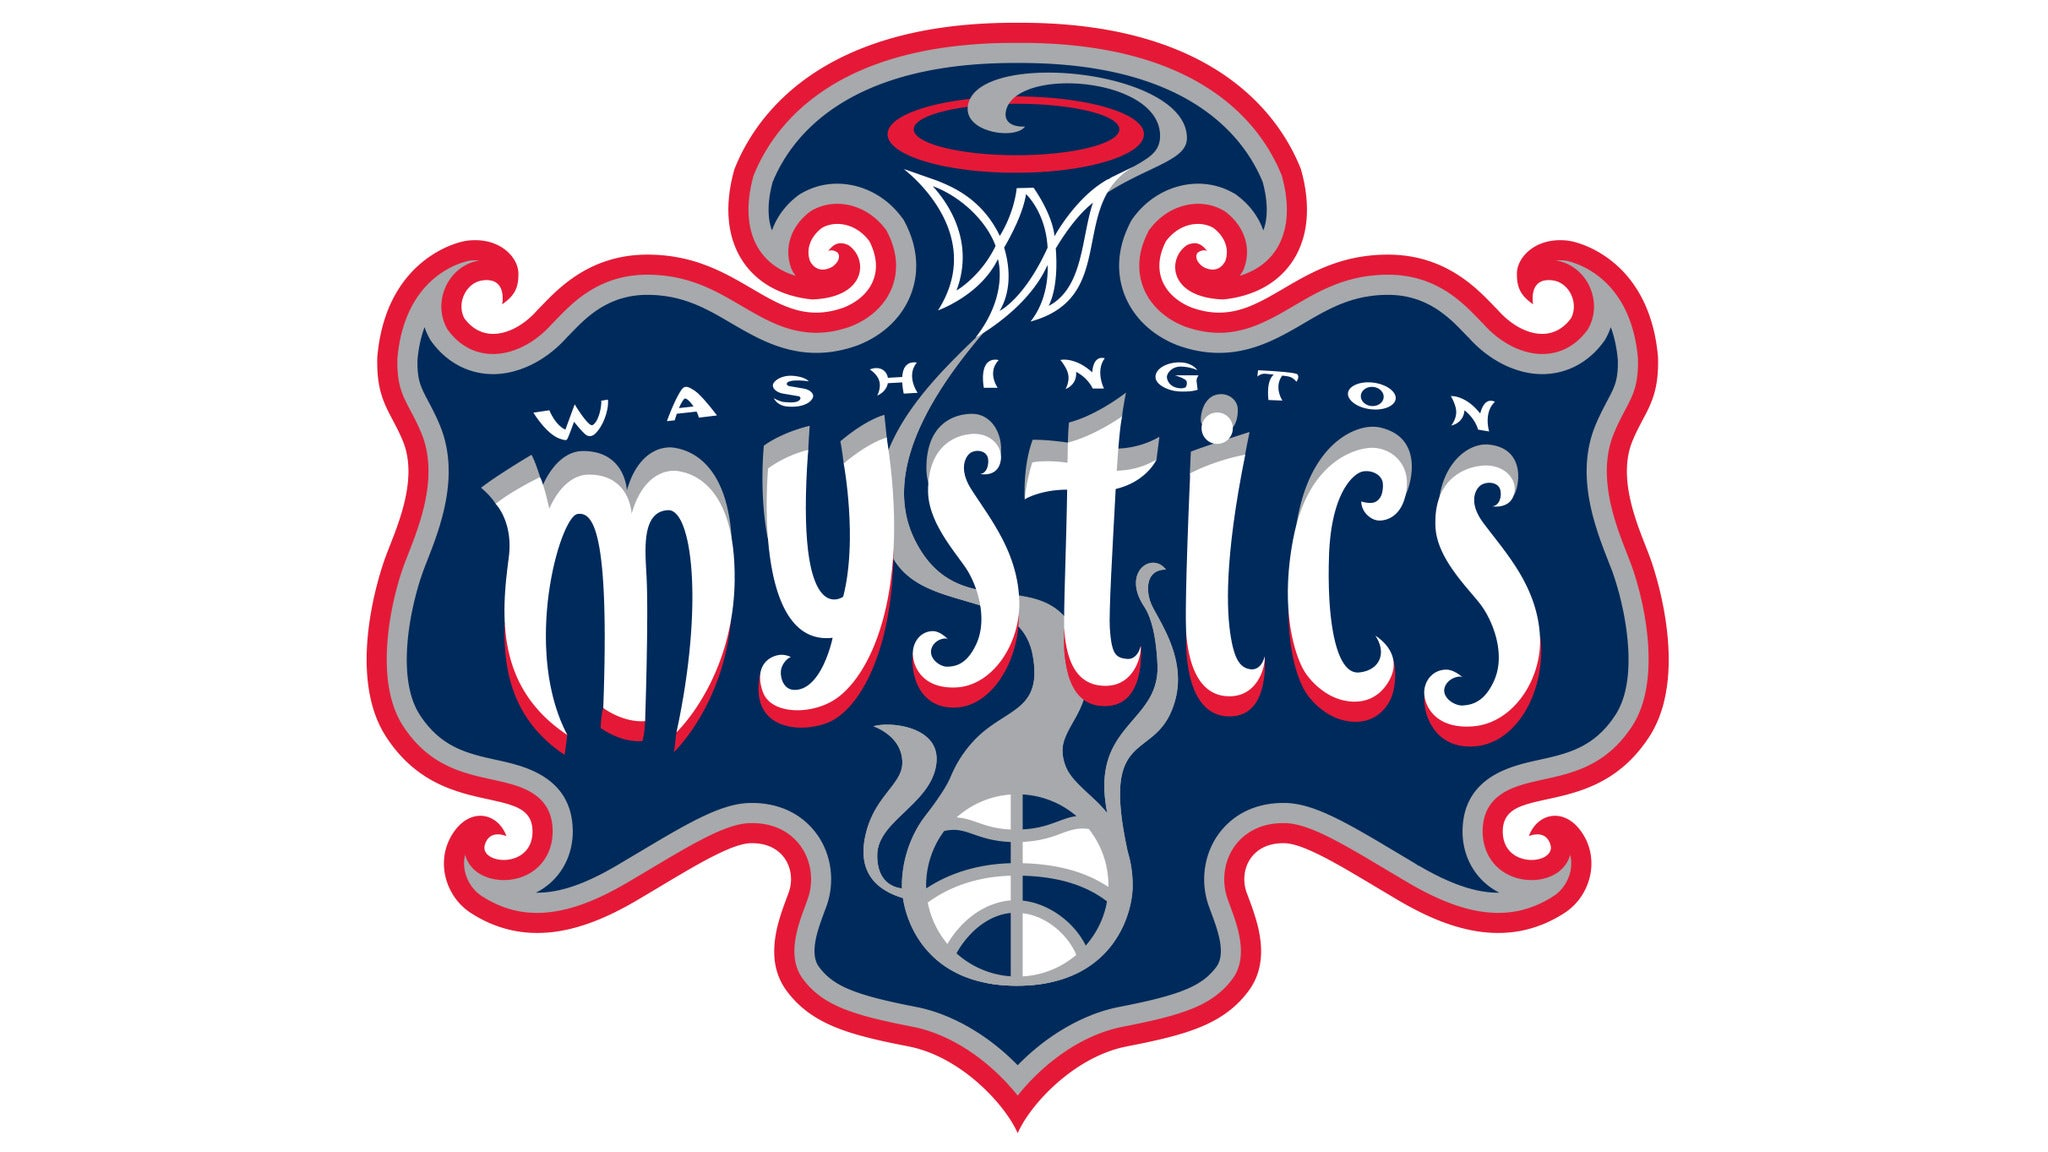 Washington Mystics vs. Connecticut Sun at Verizon Center